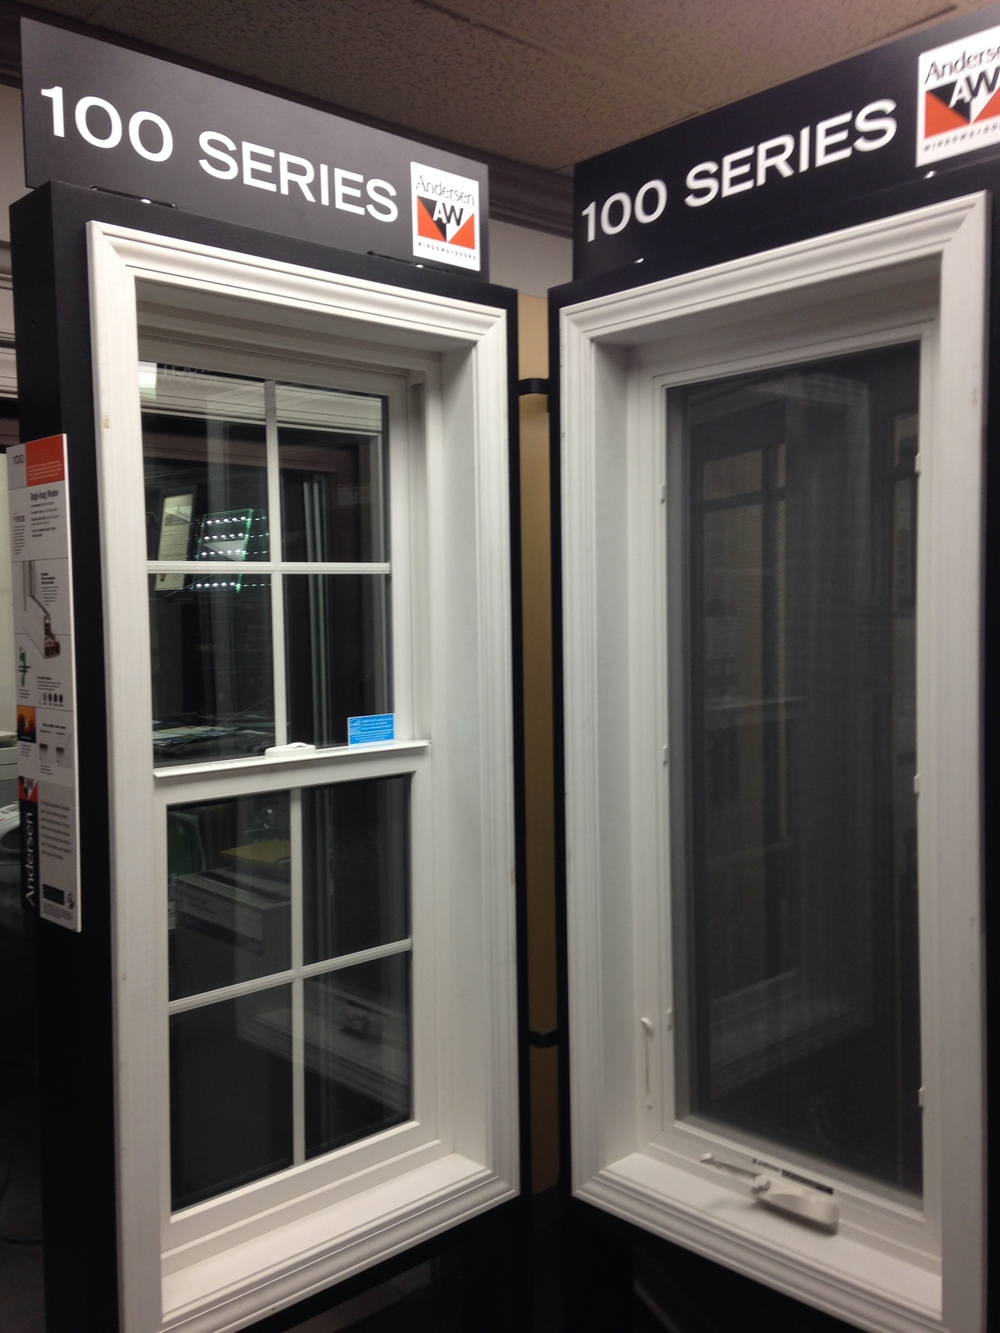 Anderson windows andersen windows - Ace Glass Carries Andersen 100 Series Windows And Doors